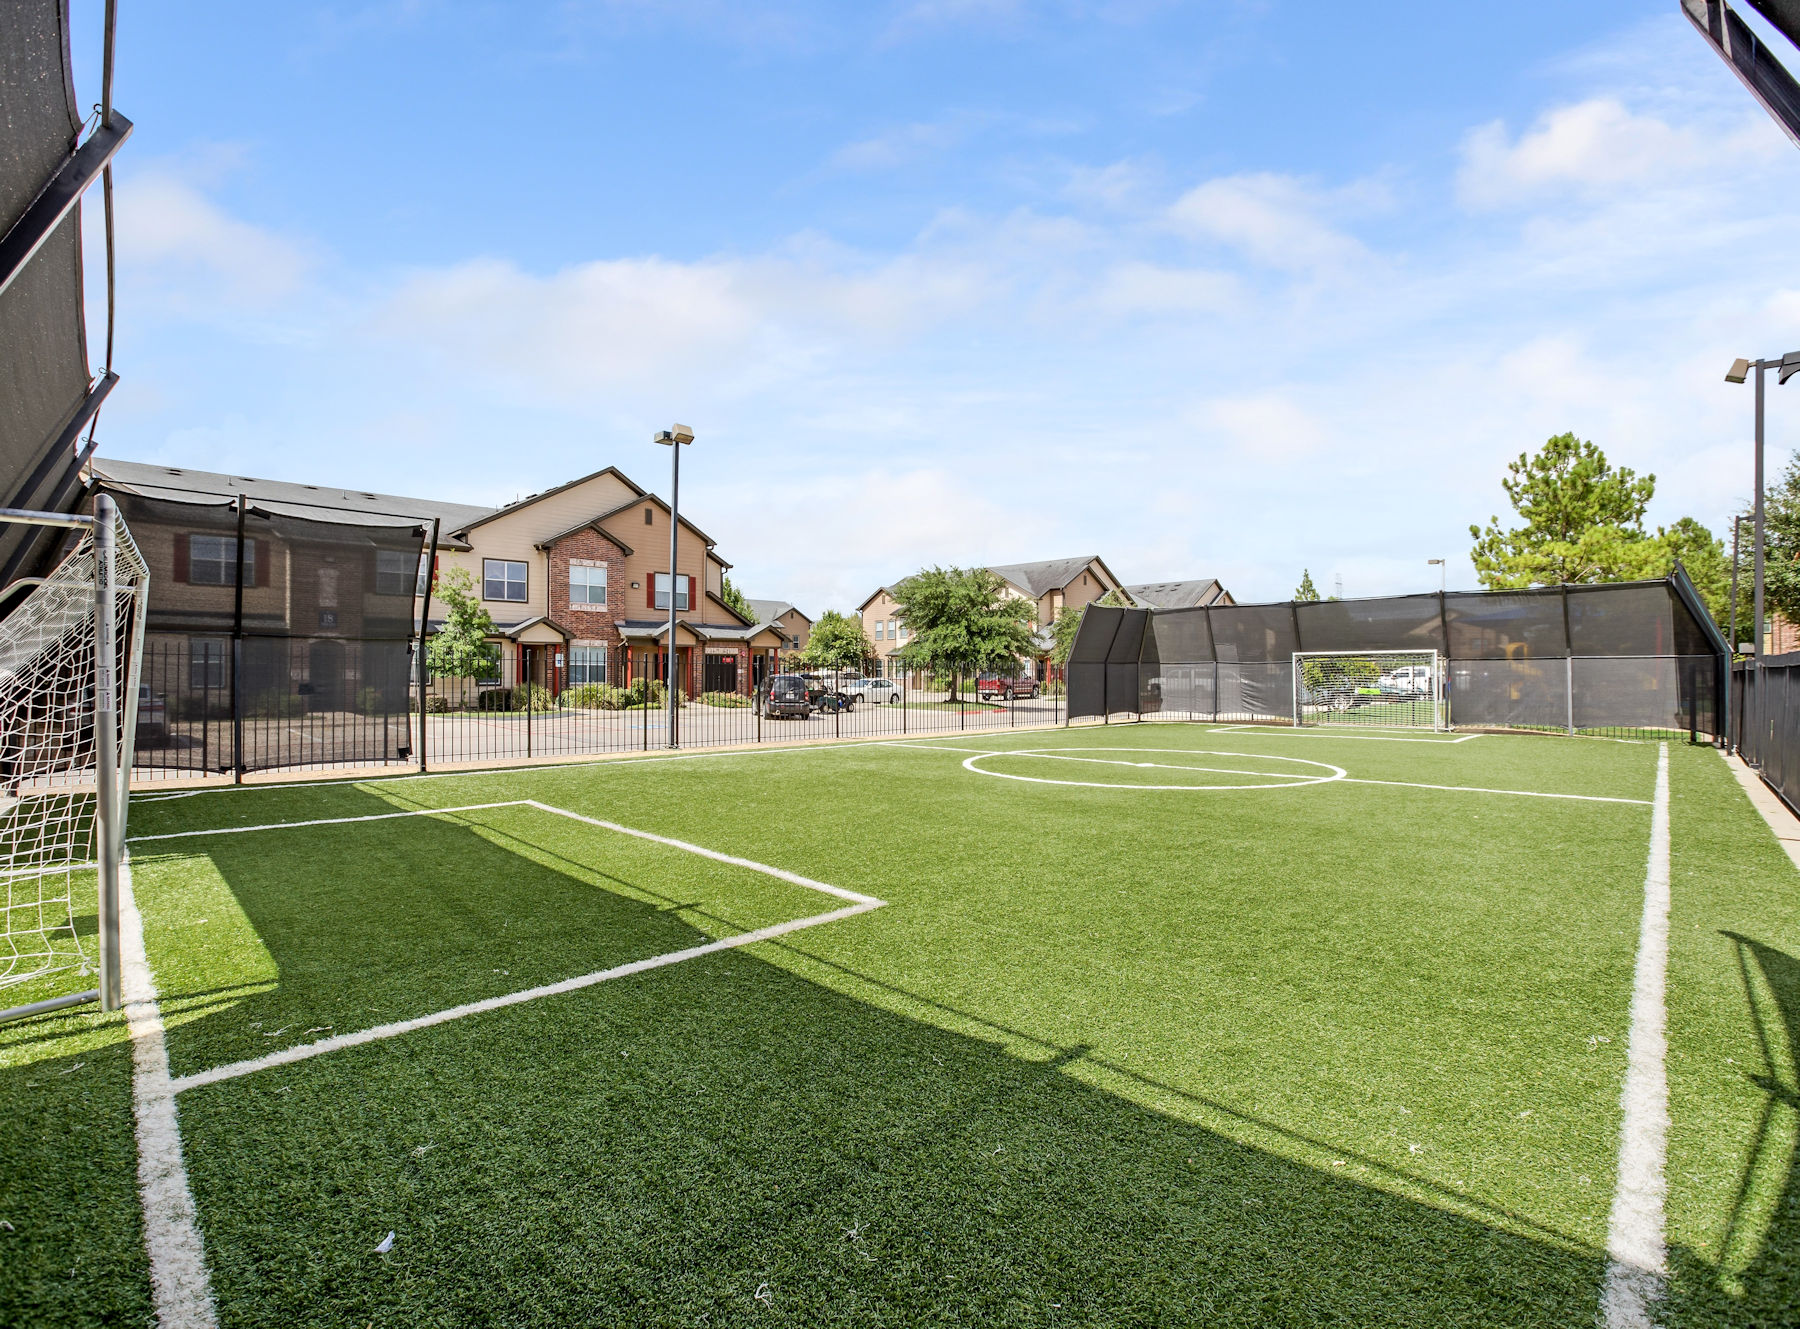 Soccer field with goals and lighting.